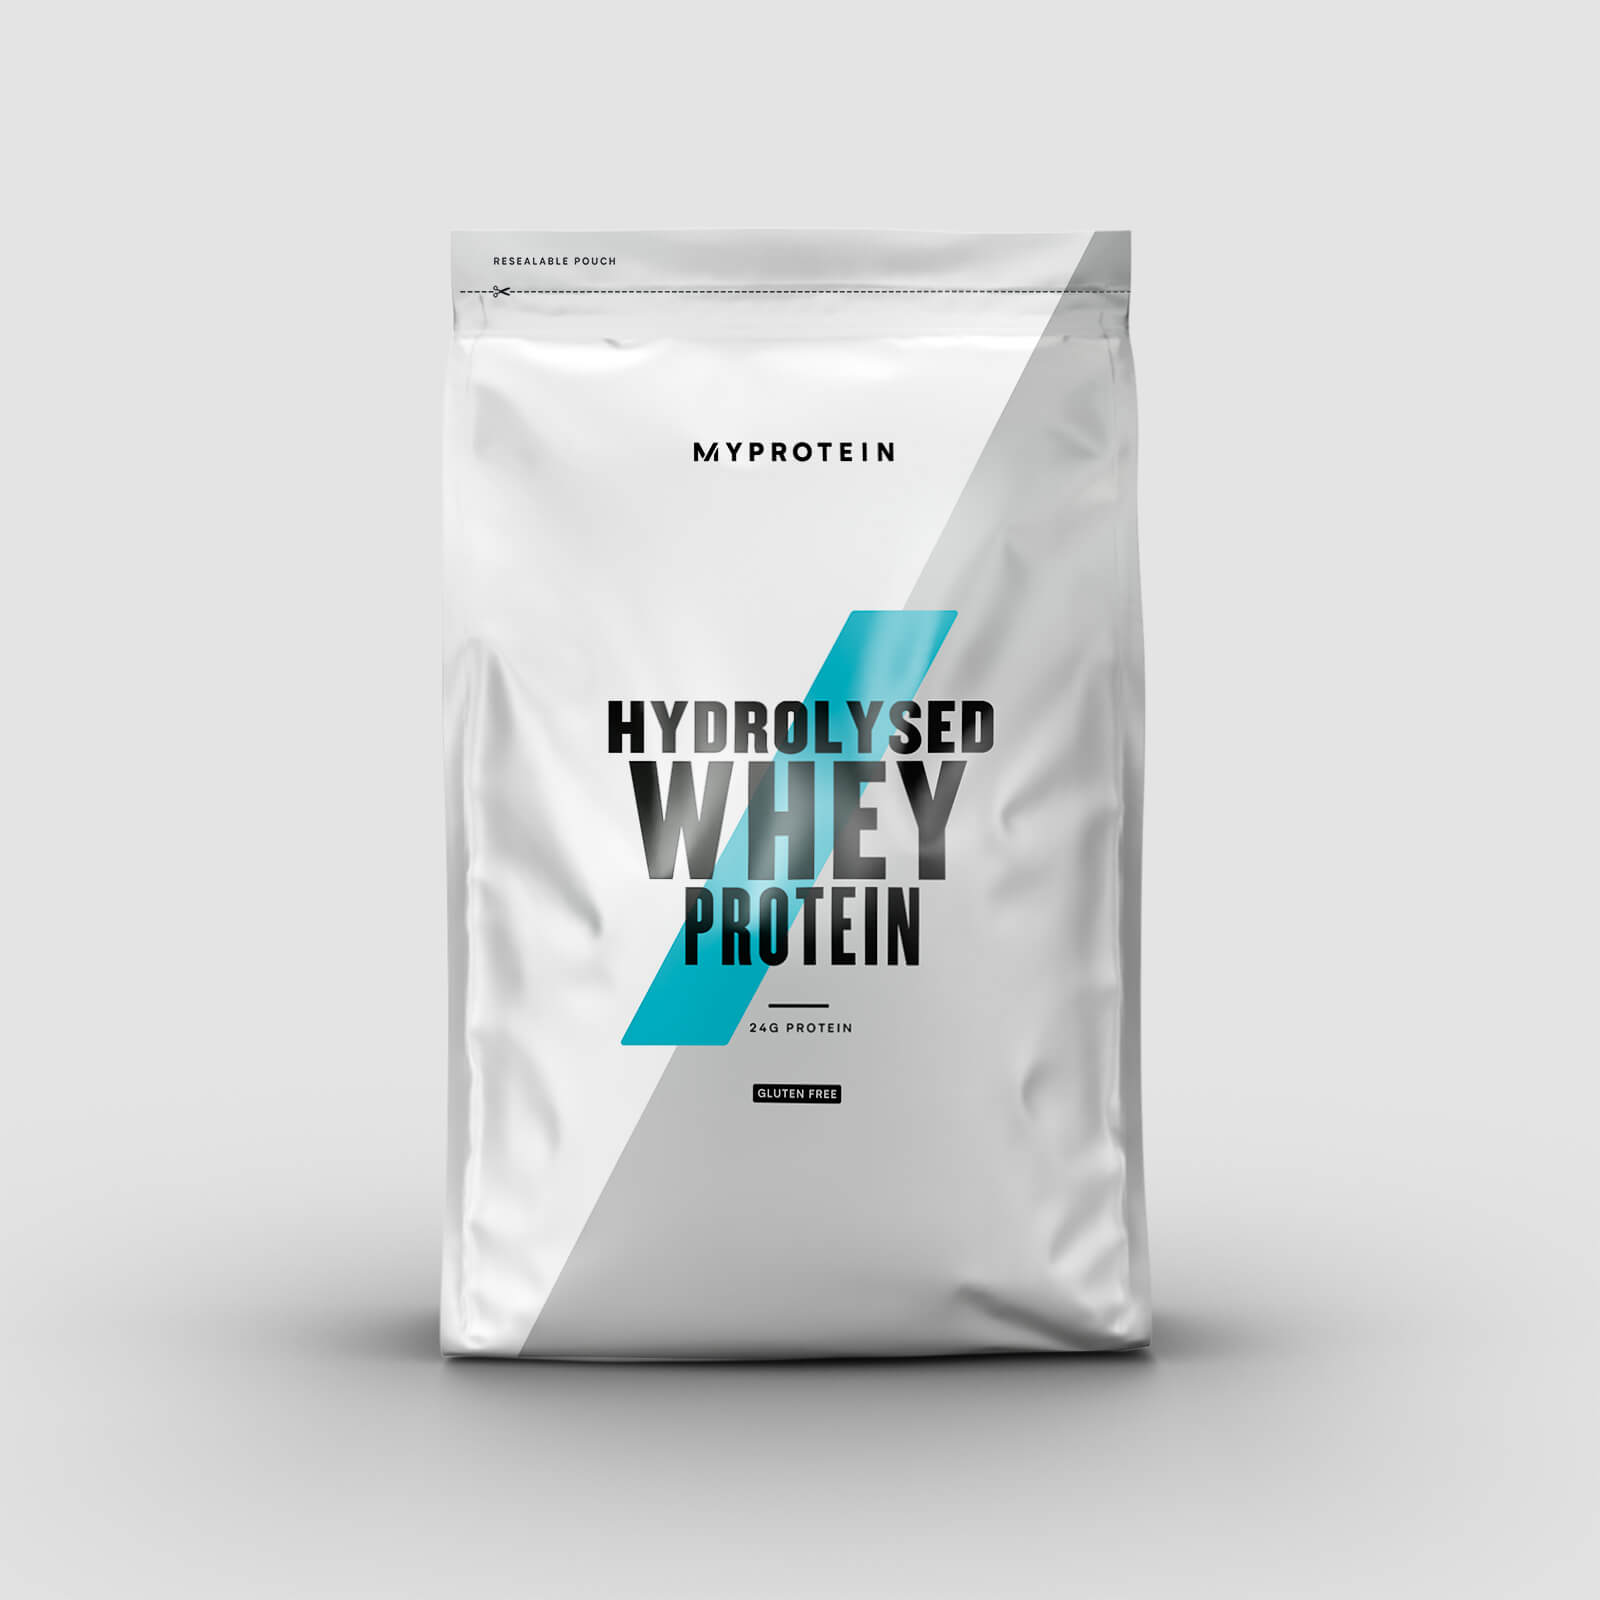 Hydrolyzed Whey Protein 5.5 lb